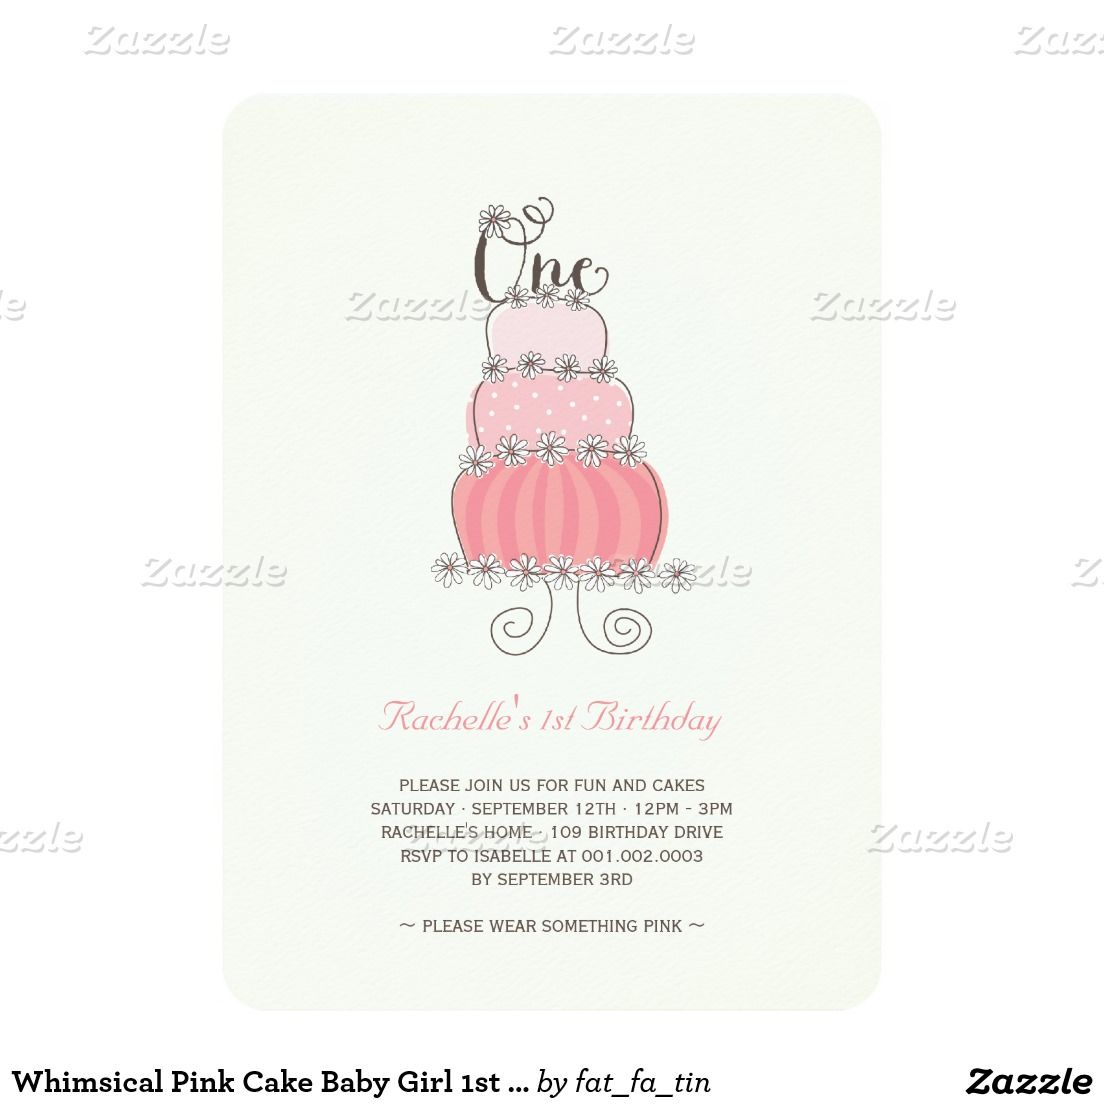 Whimsical Pink Cake Baby Girl 1st Birthday Party Card | Birthday ...